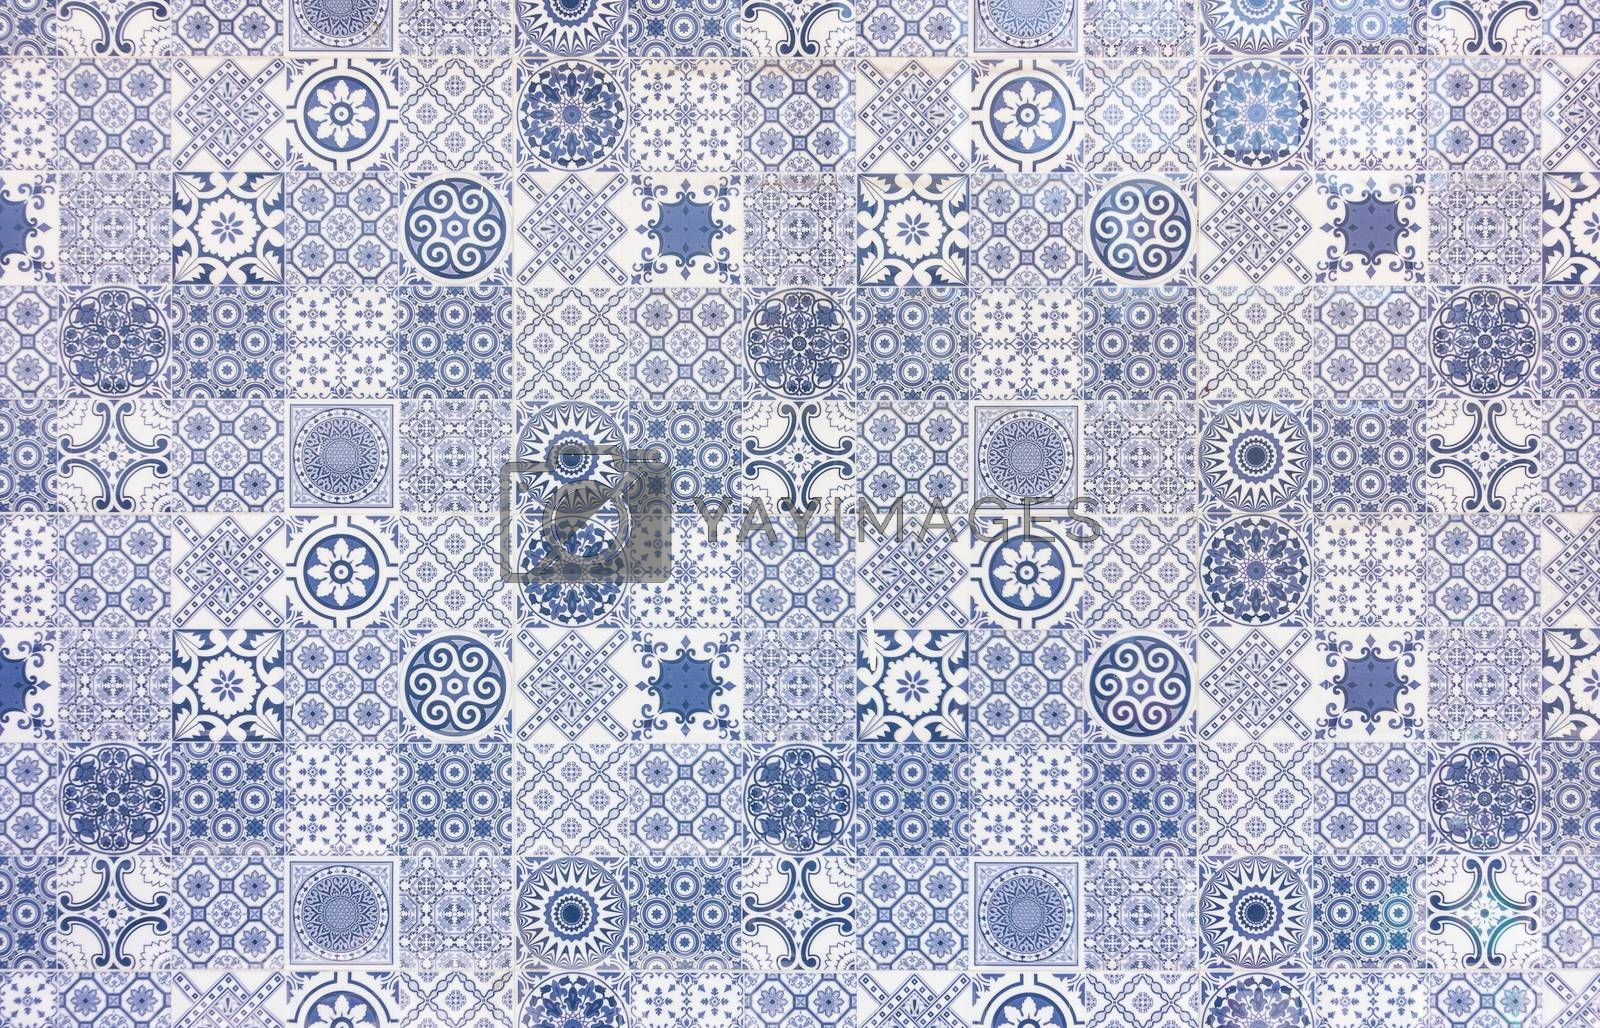 White and blue geometric azulejo tile wall texture or background